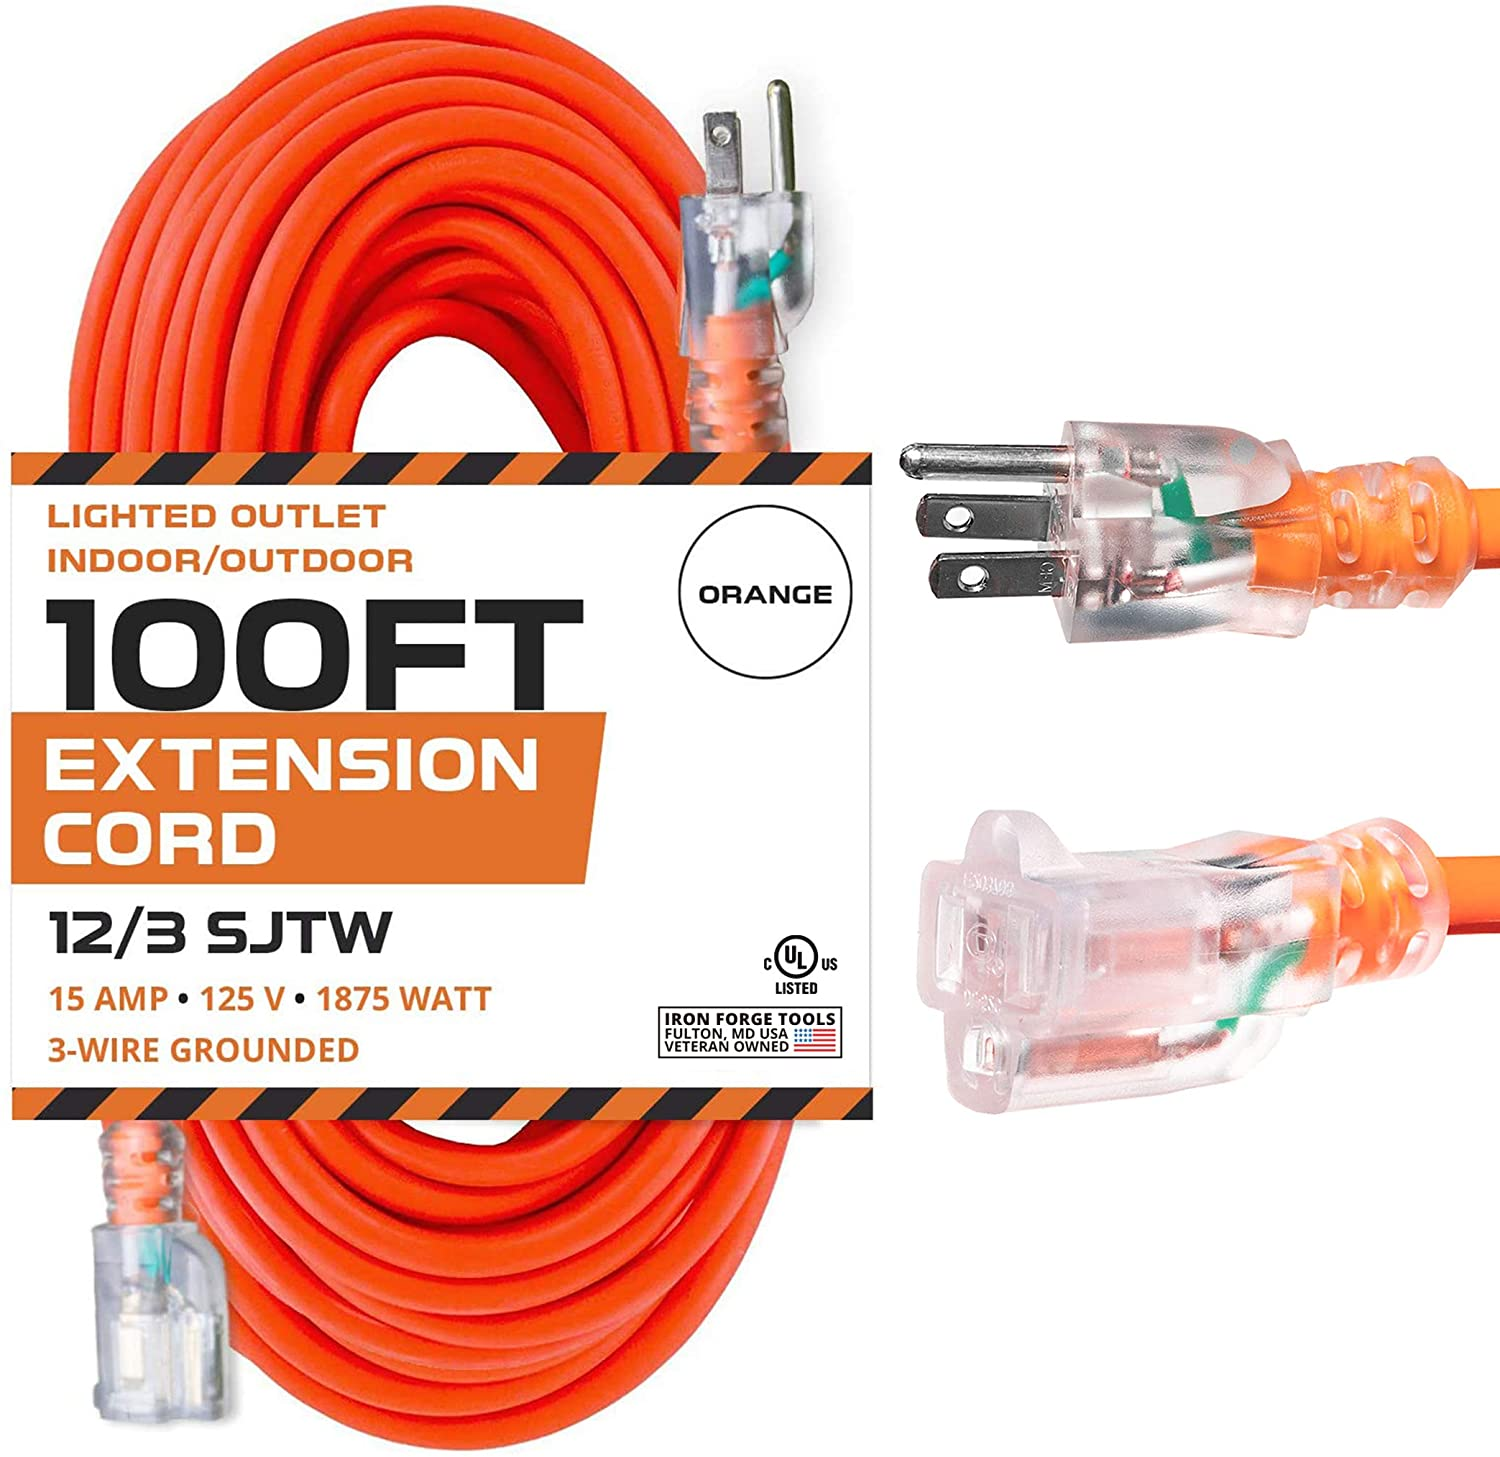 100 Ft Orange Extension Cord - 12/3 SJTW Heavy Duty Lighted Outdoor Extension Cable with 3 Prong Grounded Plug for Safety - Great for Garden & Major Appliances